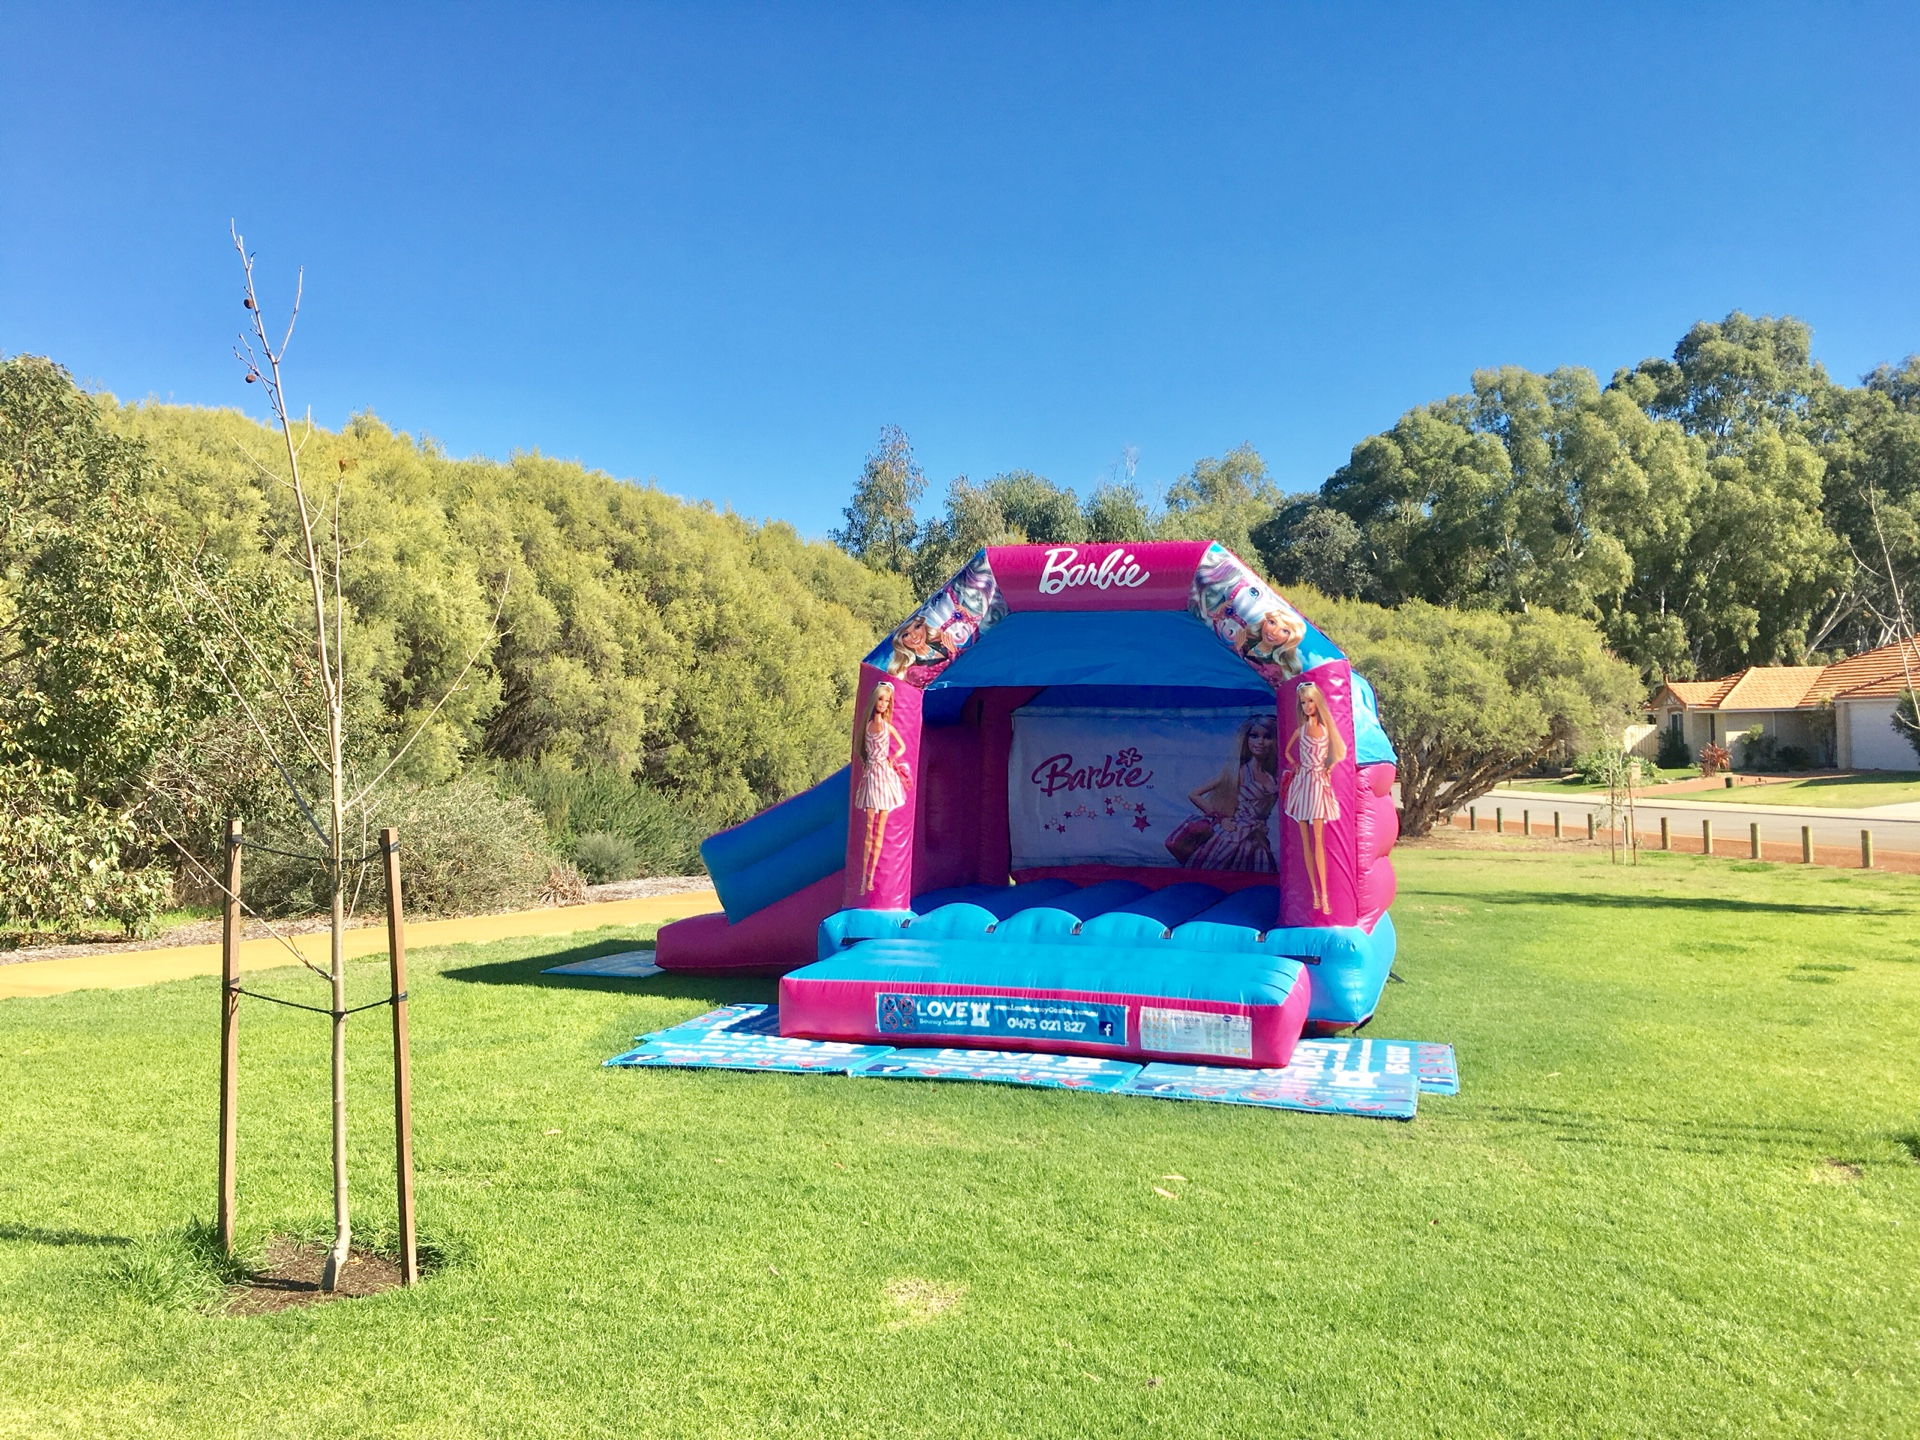 Copy of Barbie Combo Bouncy Castle Set Up In A Park In Perth, WA